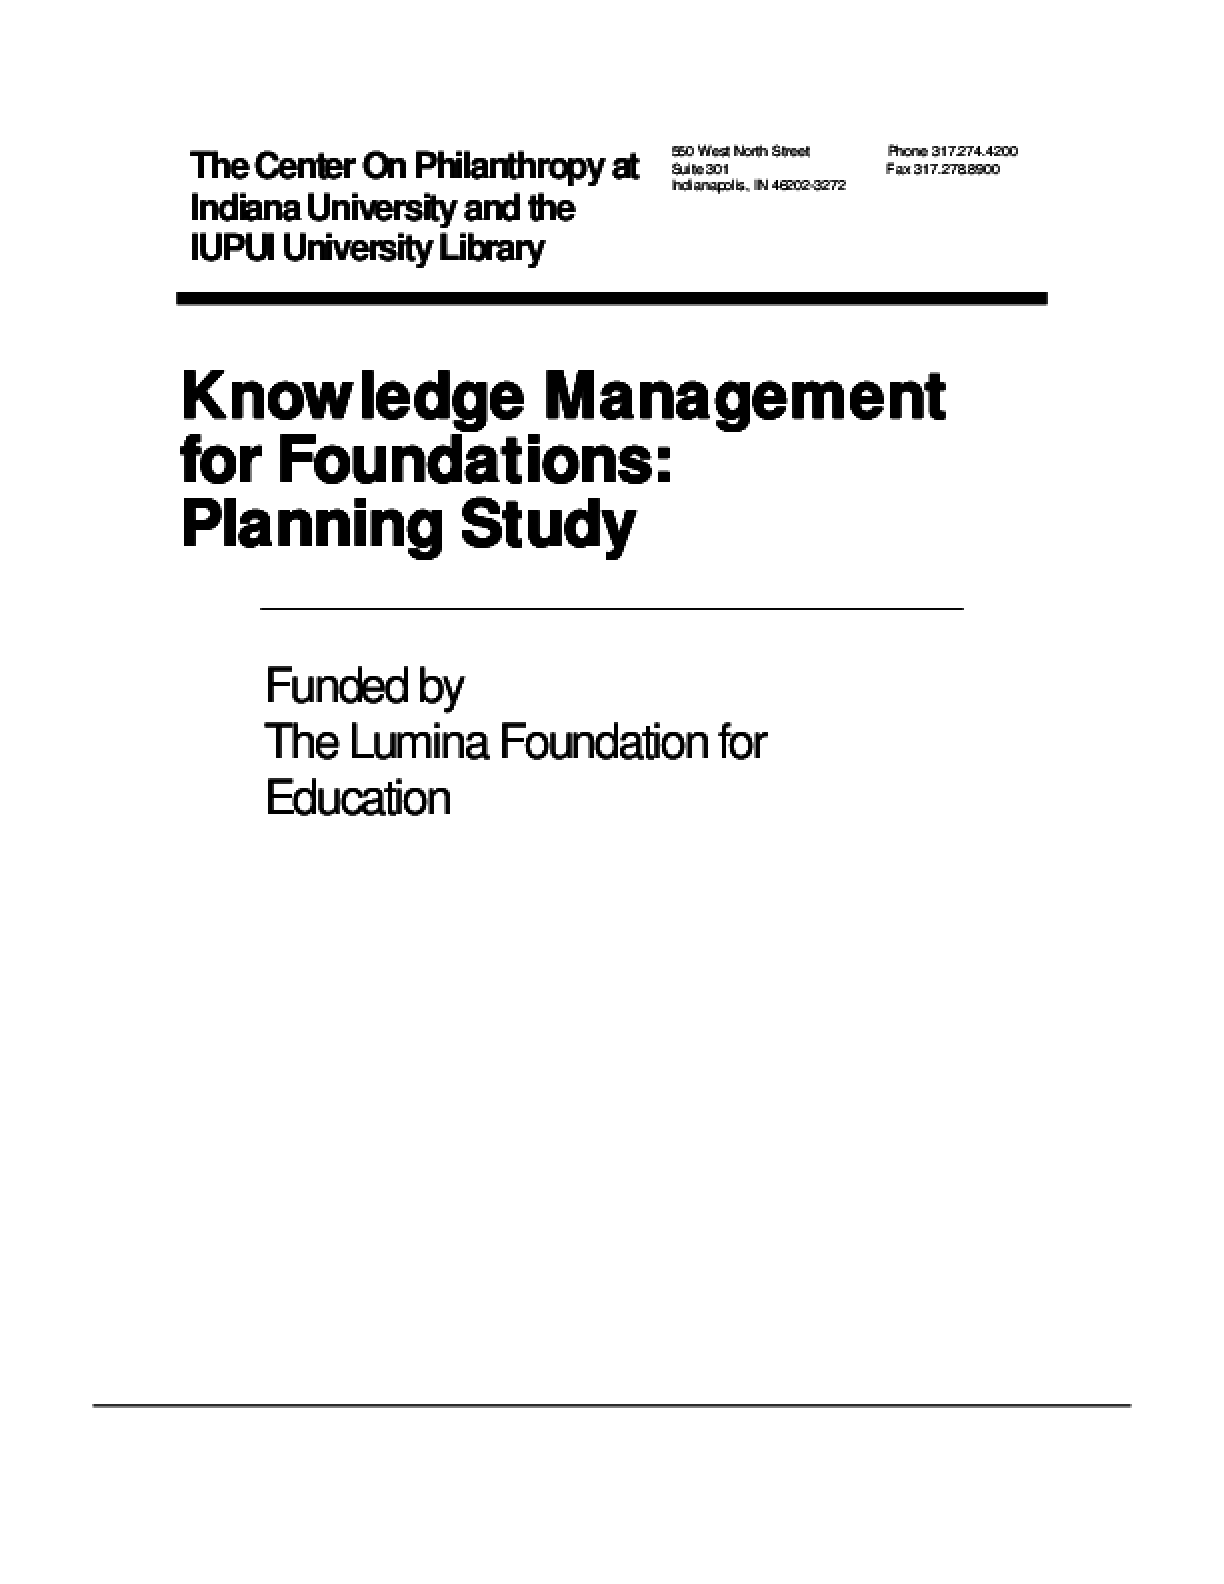 Knowledge Management for Foundations: Planning Study